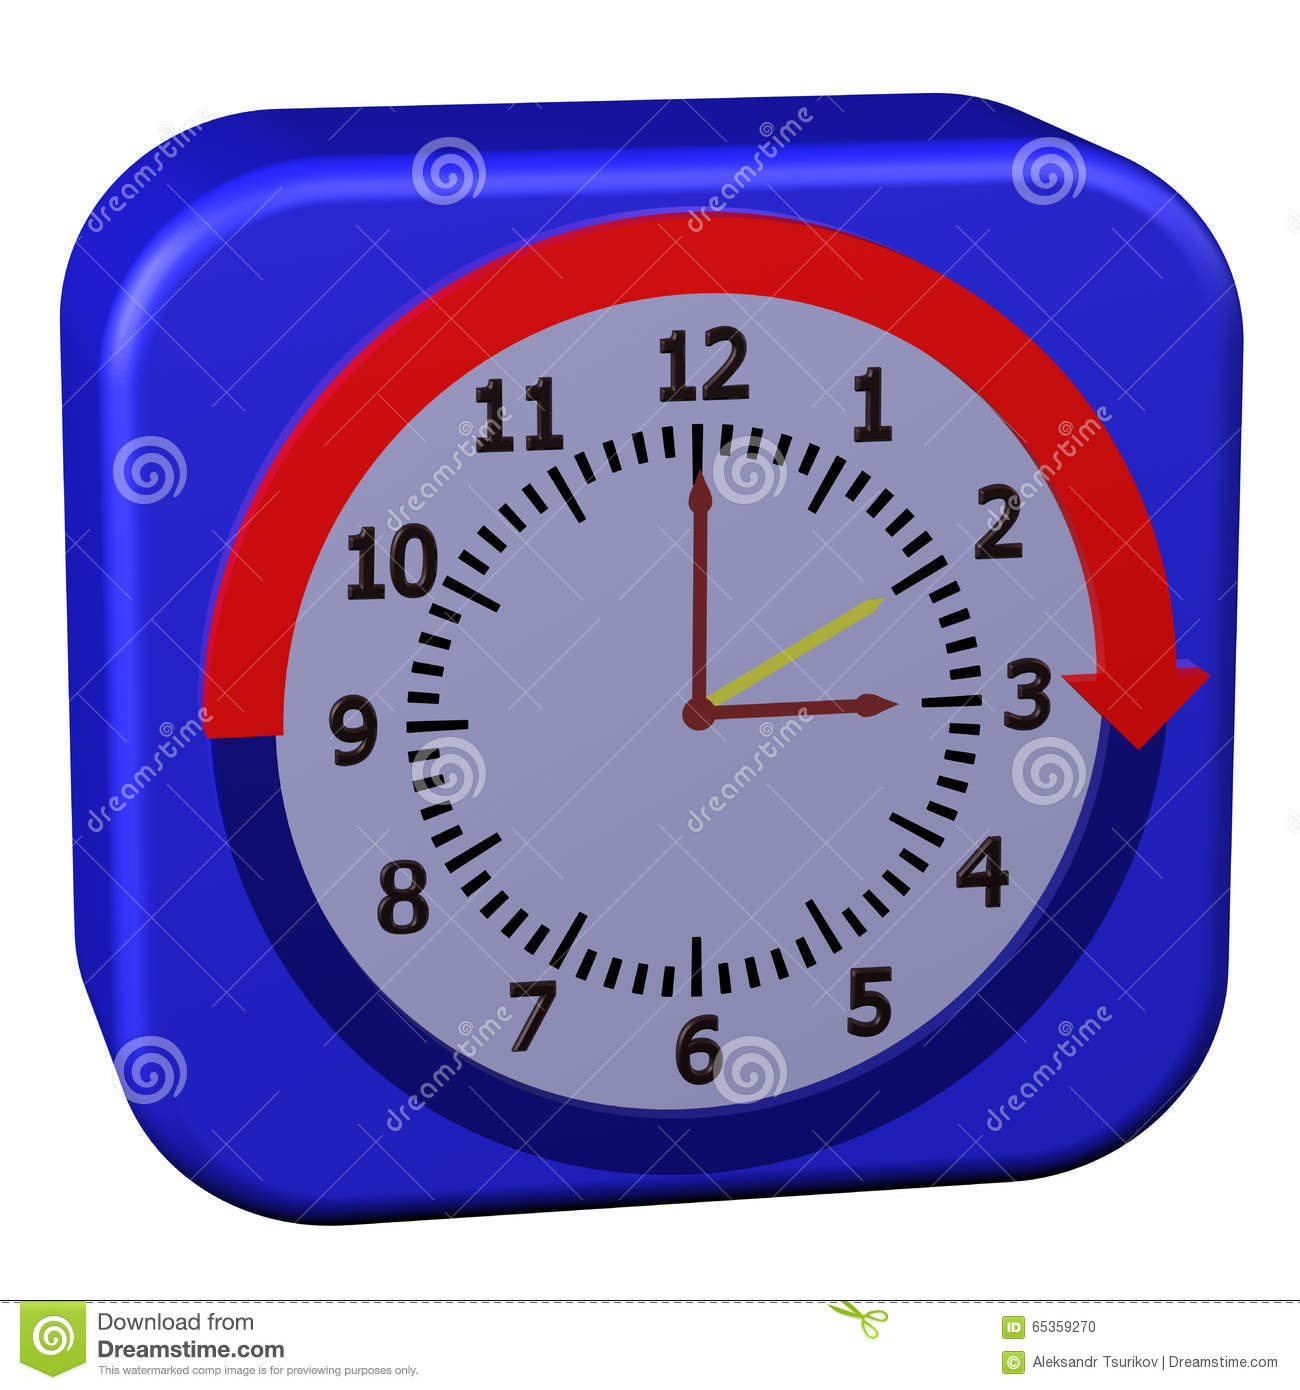 Concept daylight saving time started stock illustration for When was daylight savings time started